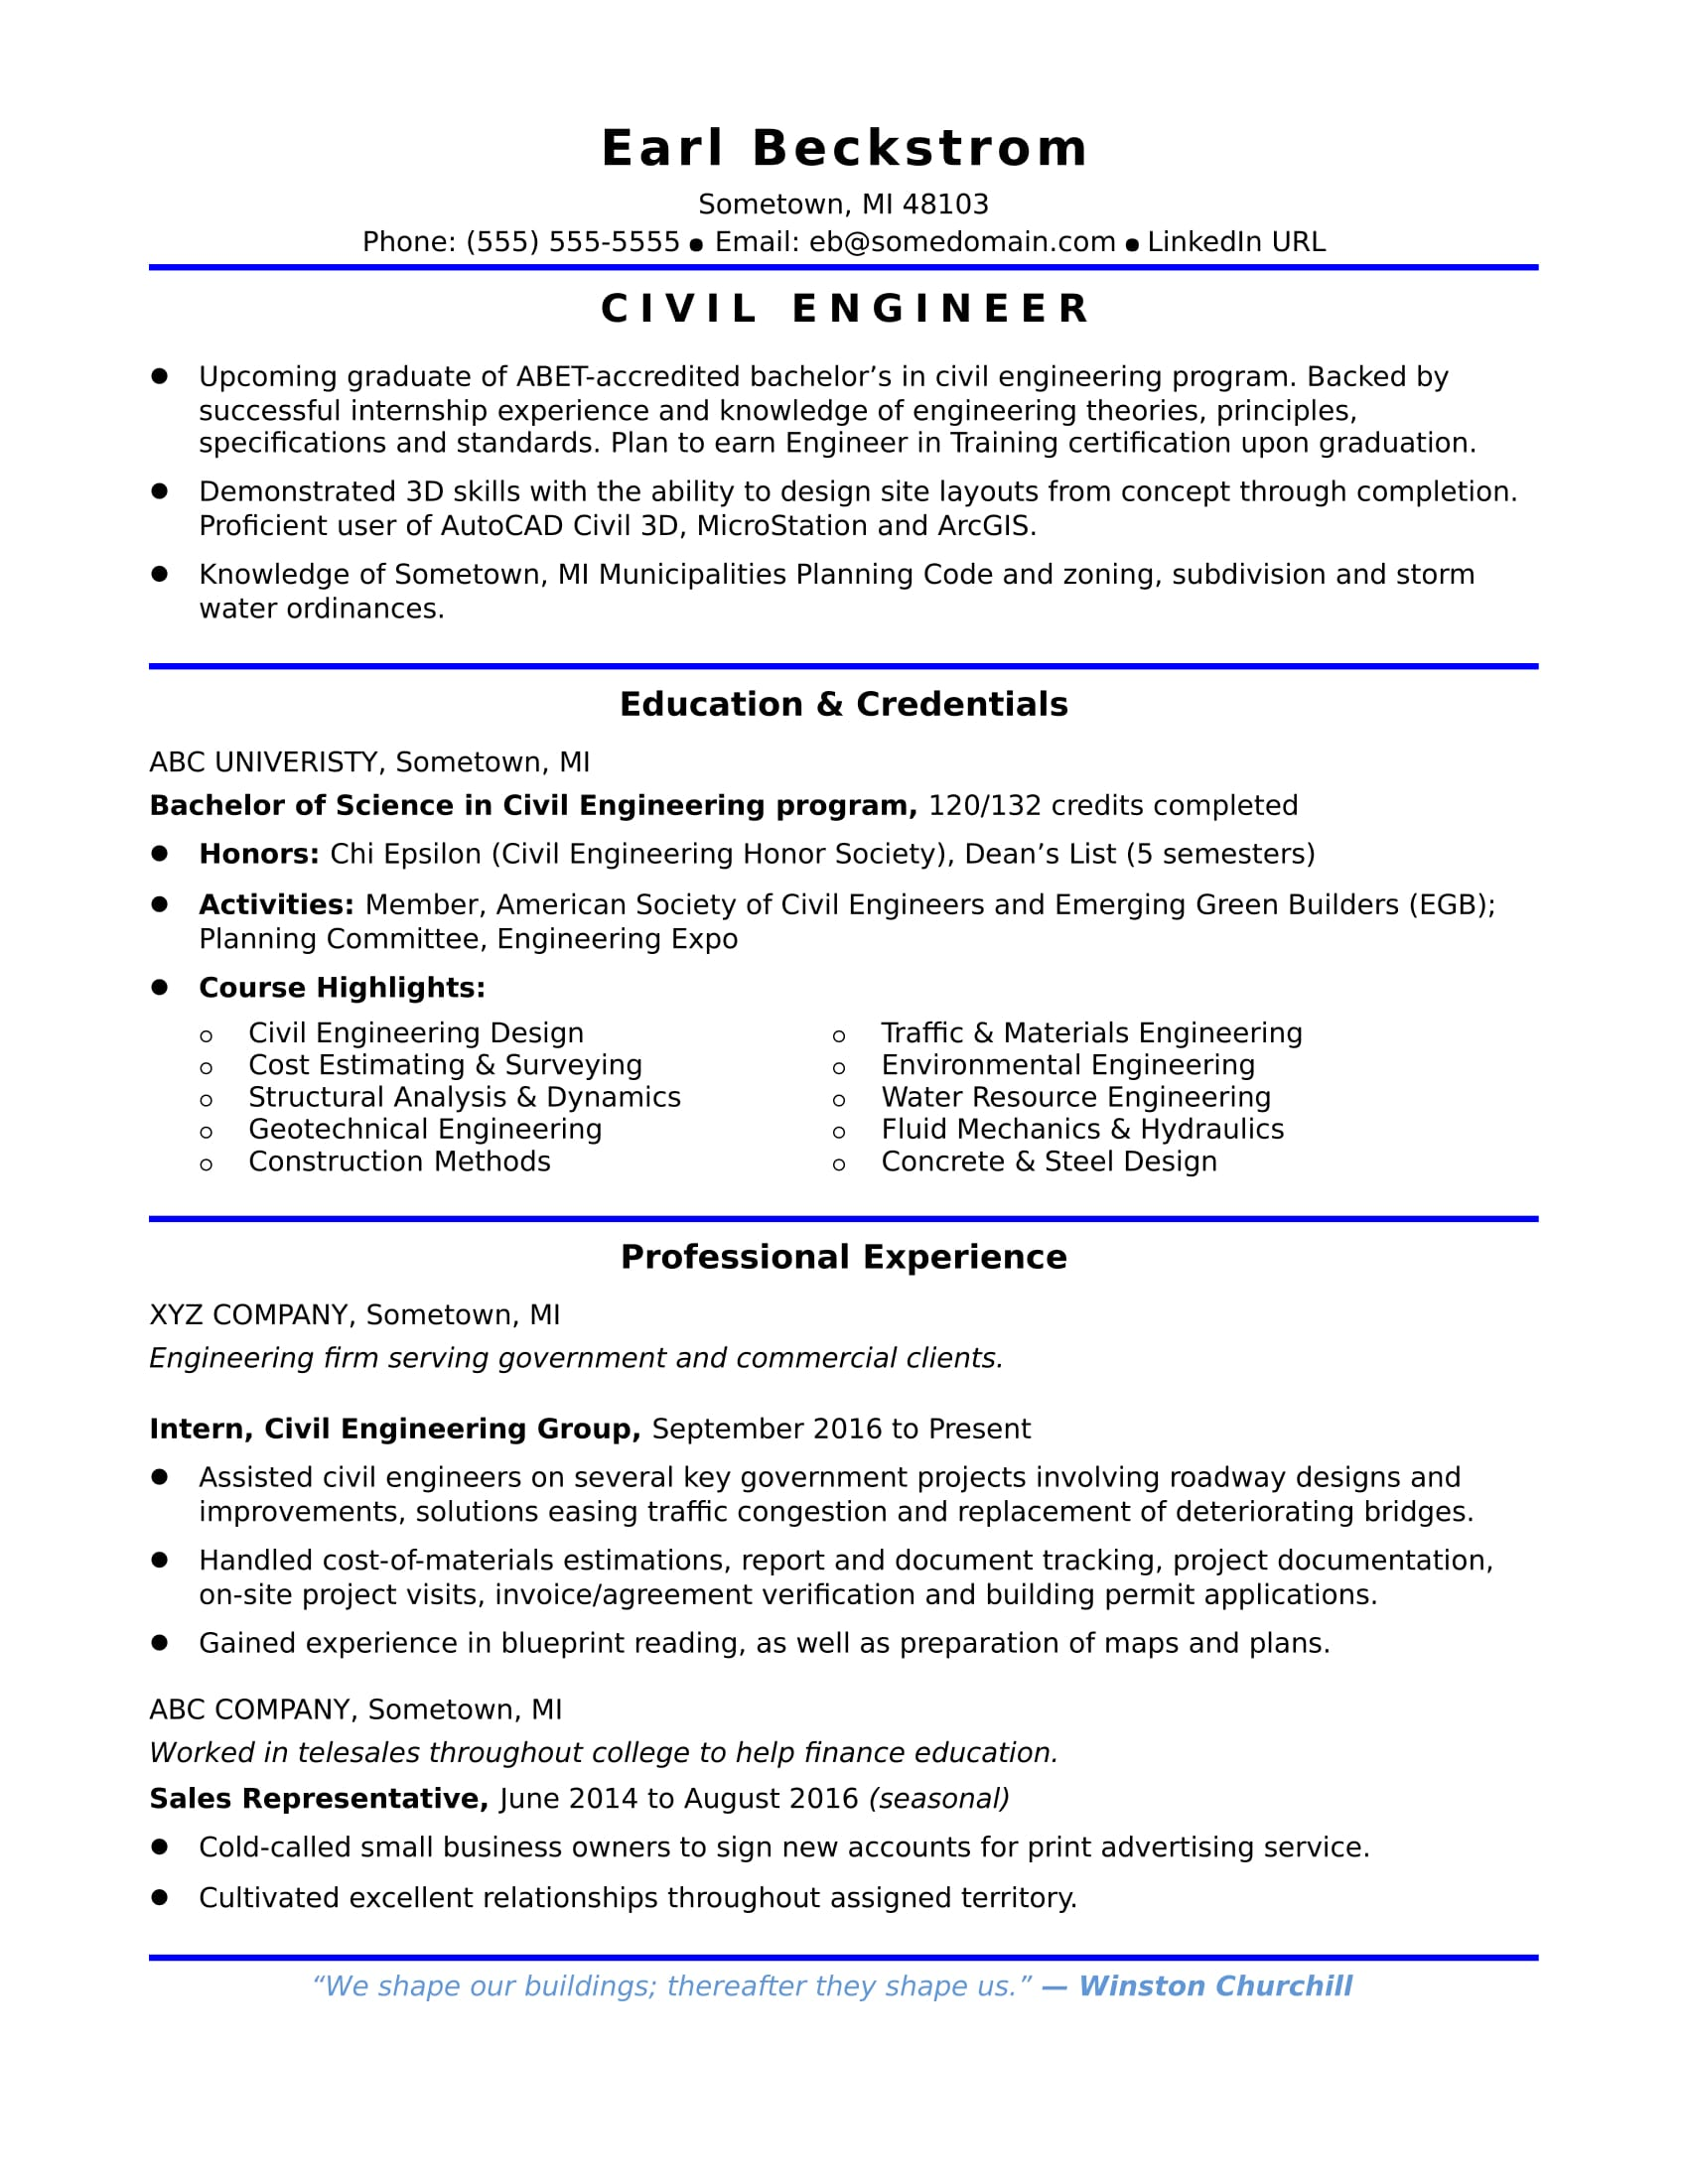 Sample Resume For An Entry Level Civil Engineer  Resume Examples For Engineers